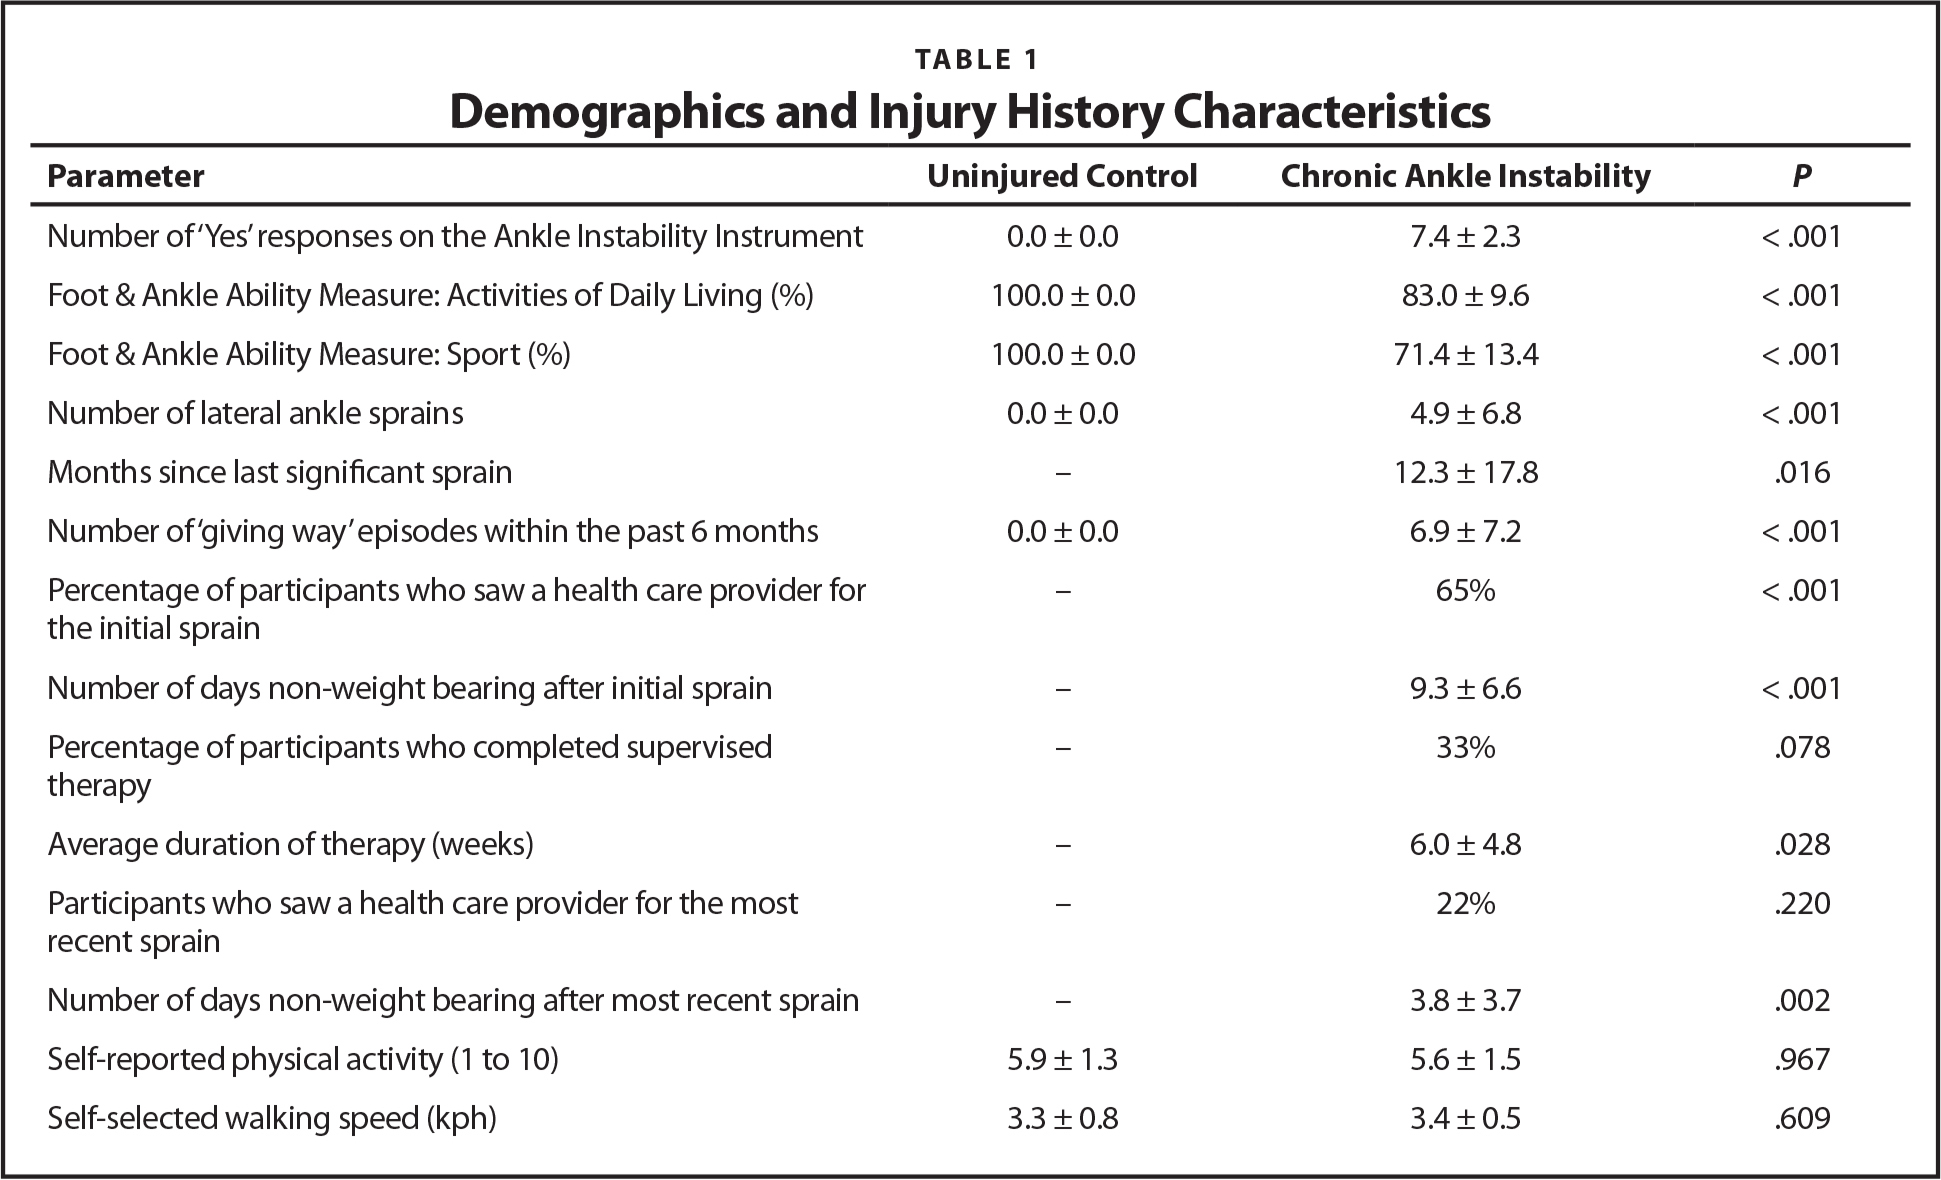 Demographics and Injury History Characteristics